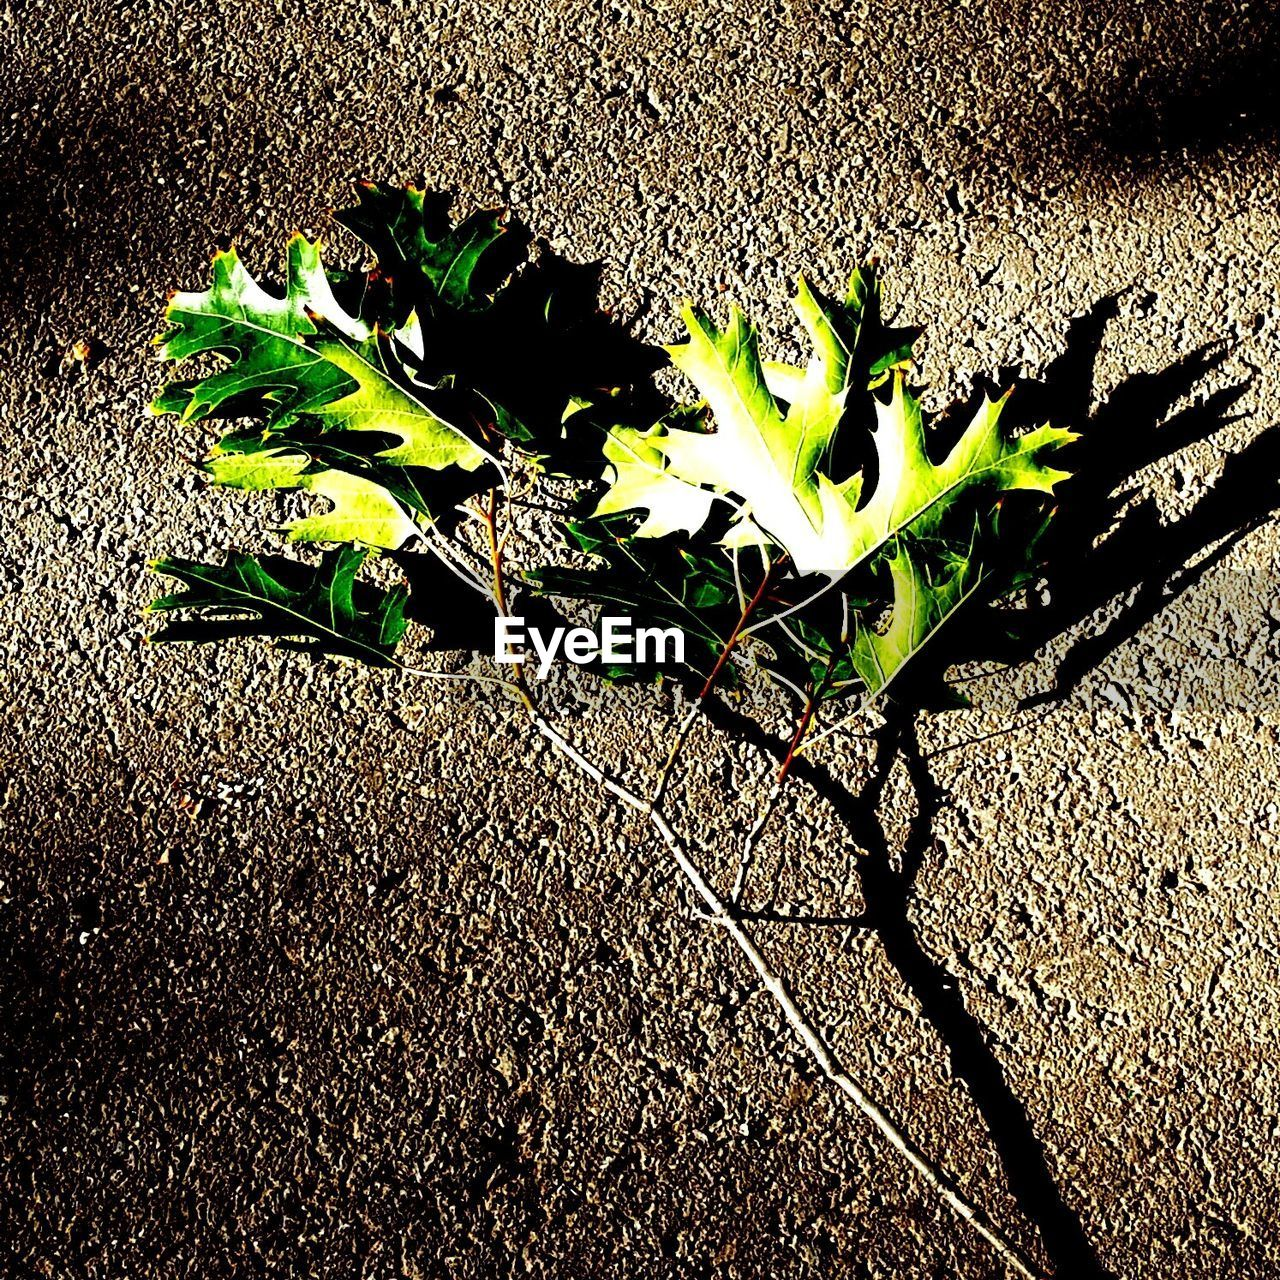 growth, leaf, plant, nature, sunlight, no people, outdoors, day, shadow, close-up, fragility, freshness